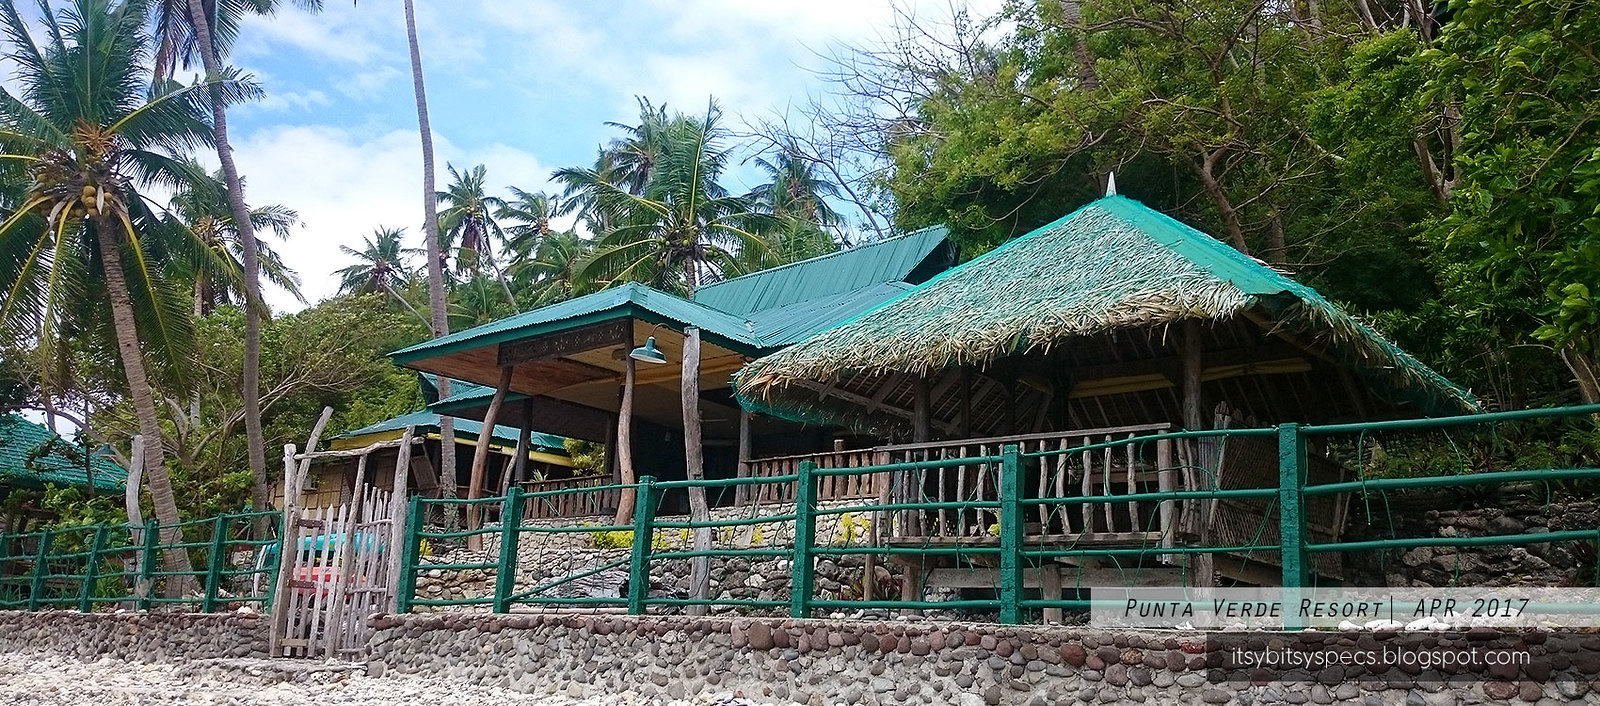 Punta Verde Dive Resort 2017